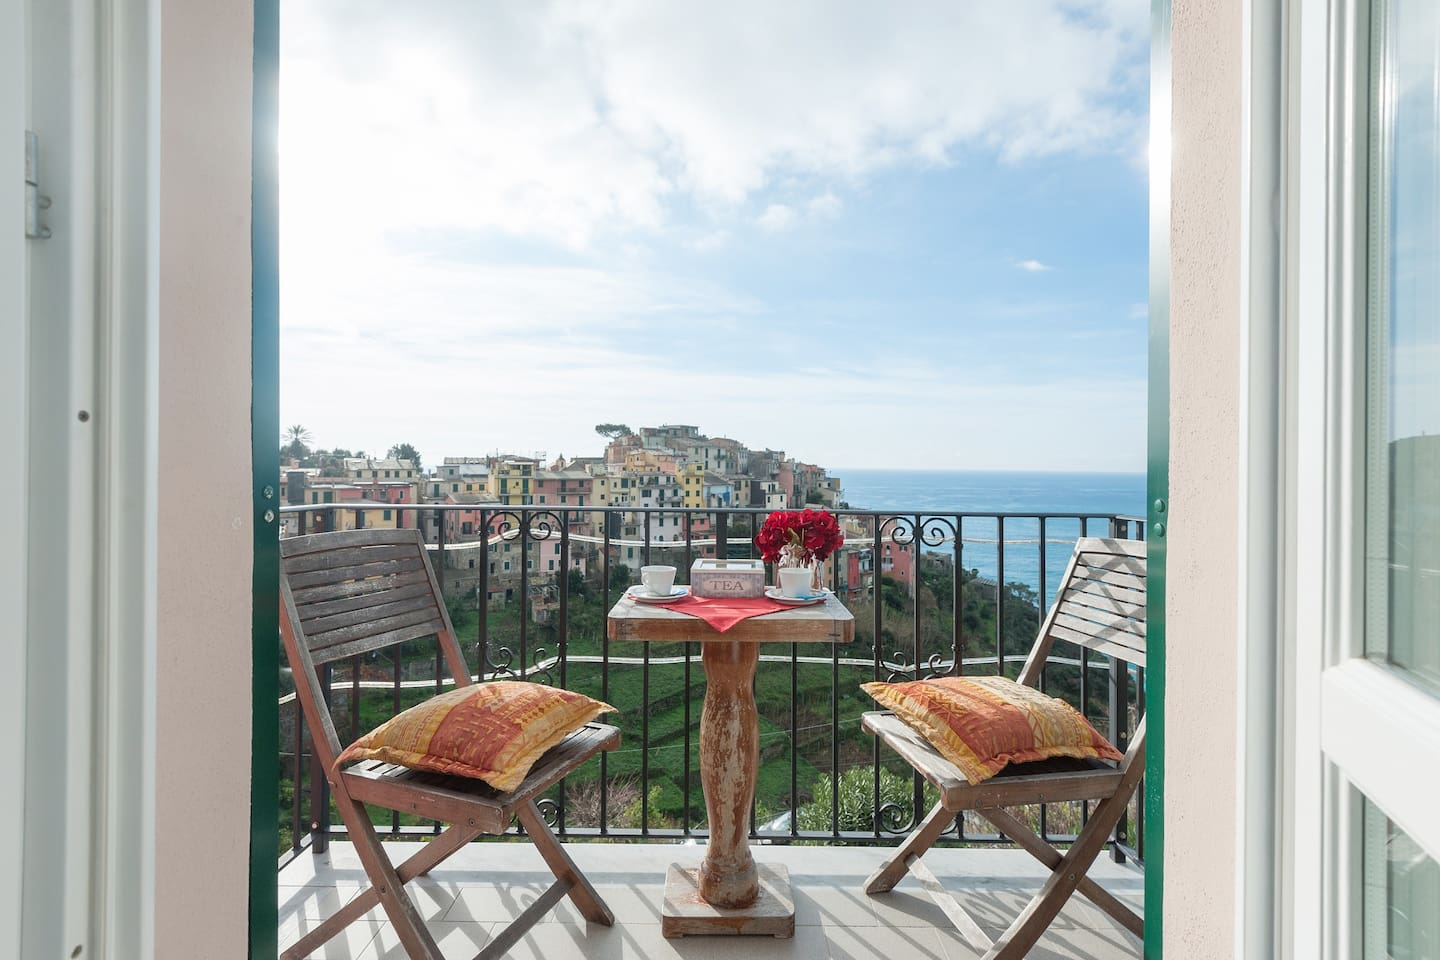 little private balcony where is possible to drink and admire the beautiful view